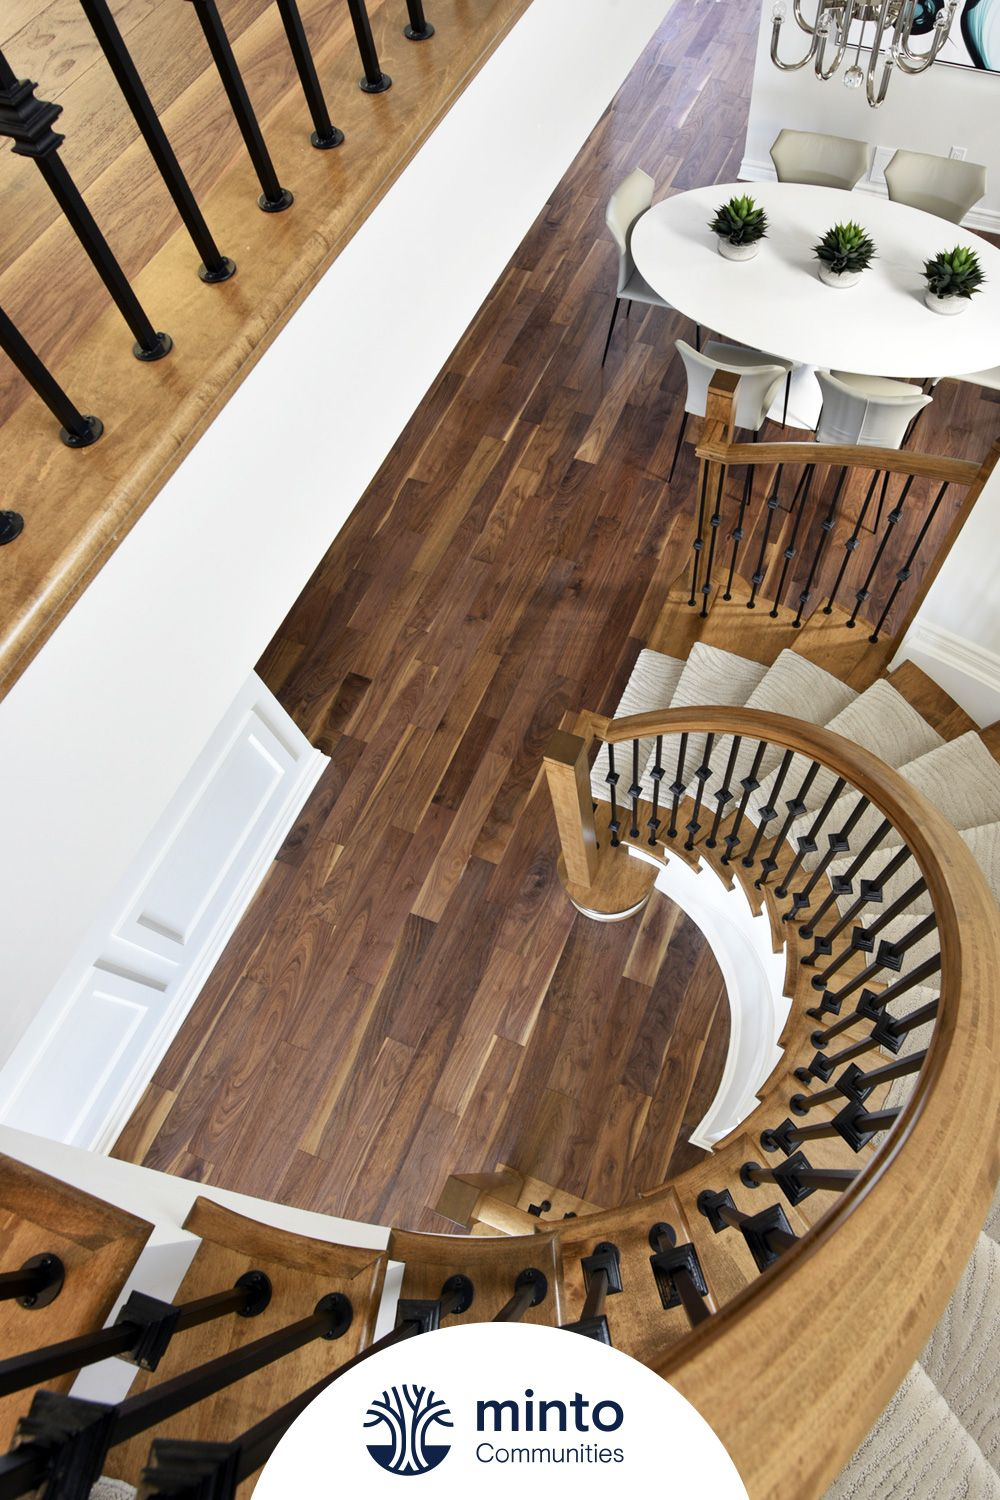 With beautiful detailing and sophisticated features and finishes, the Georgian is bound to satisfy your refined side. #MintoCommunities #NewHomeIdeas #SpiralStaircase #SprialStairs #HomeDesign #HomeDesignIdeas